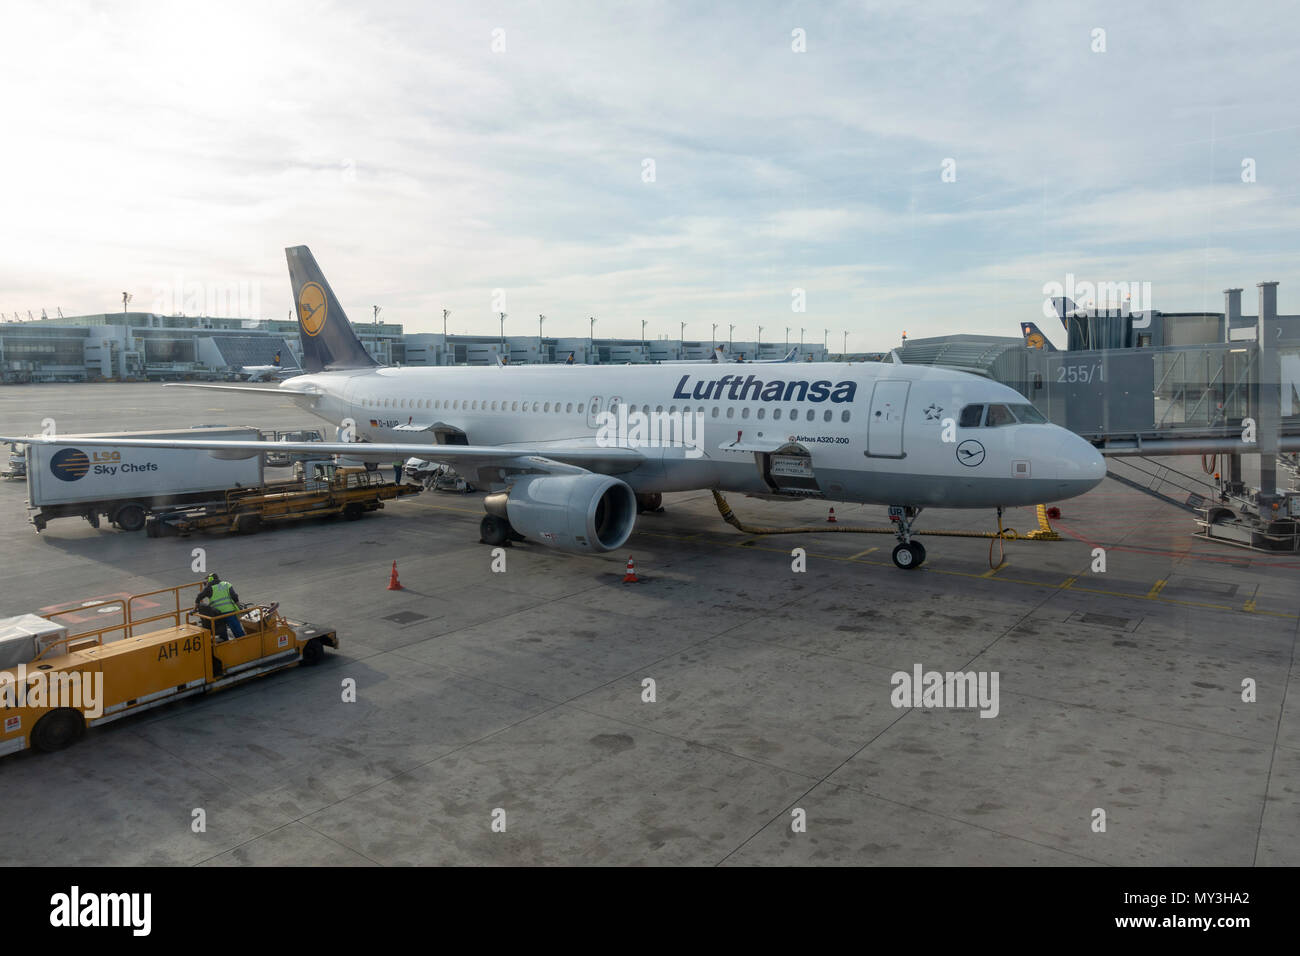 A Lufthansa Airbus A320-200 on the stand in Munich Airport, (Flughafen München), Germany. - Stock Image